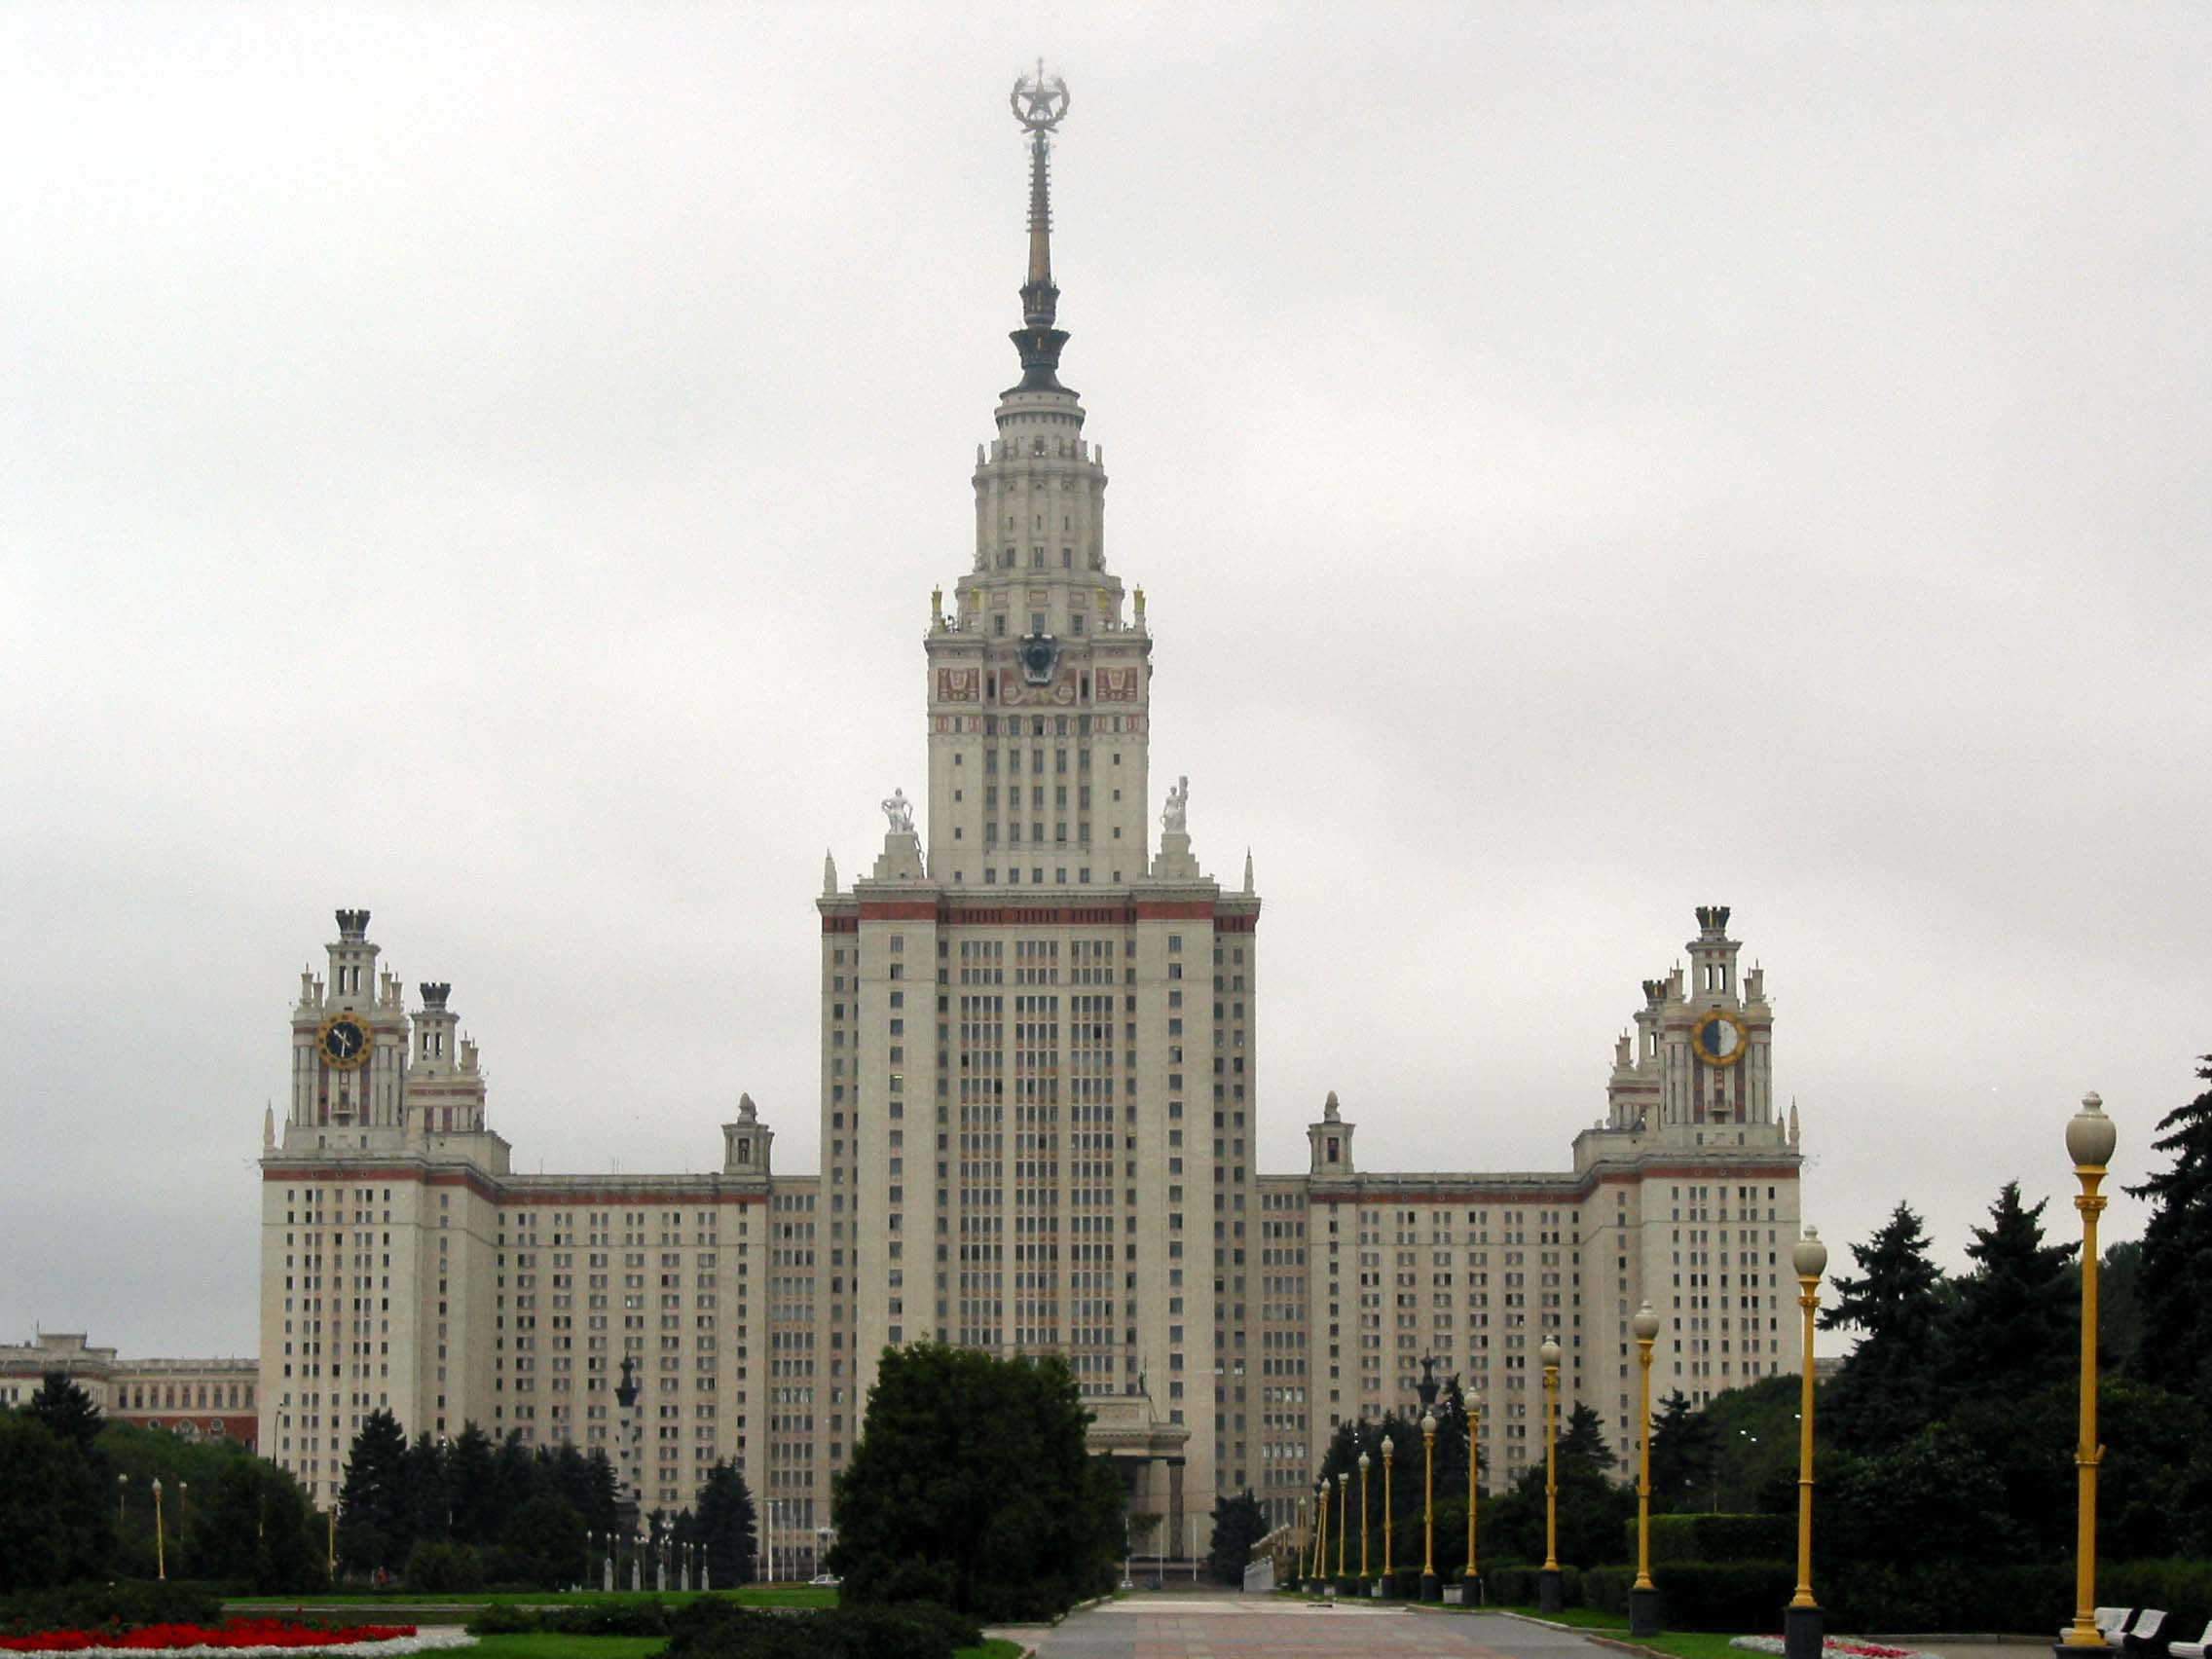 Architecture Moscow State University Sparrow Hills 01